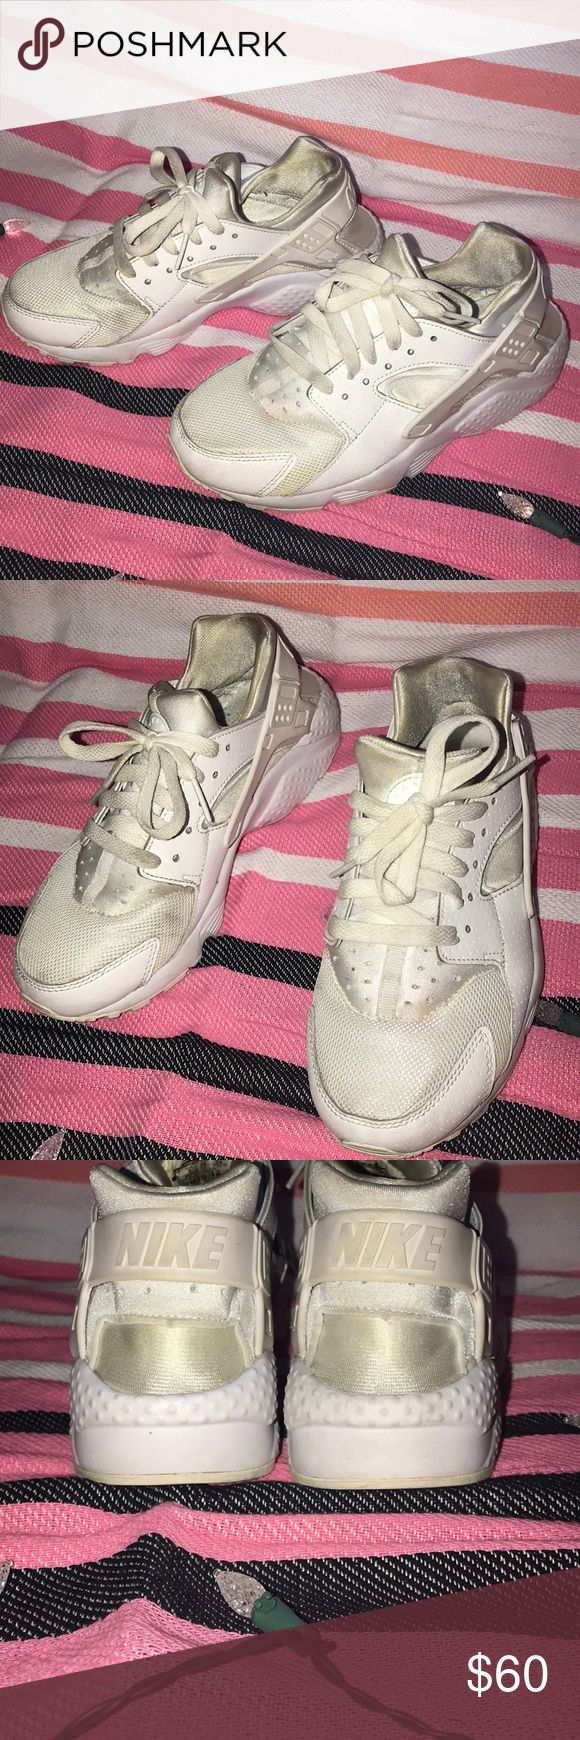 White Nike Hurache Shoes! White Nike Hurache Shoes! Only worn a few times for Dance Competitions, so in need of a bit of a clean. Super cute & still have some life in them! Offers accepted!!  Nike Shoes Sneakers